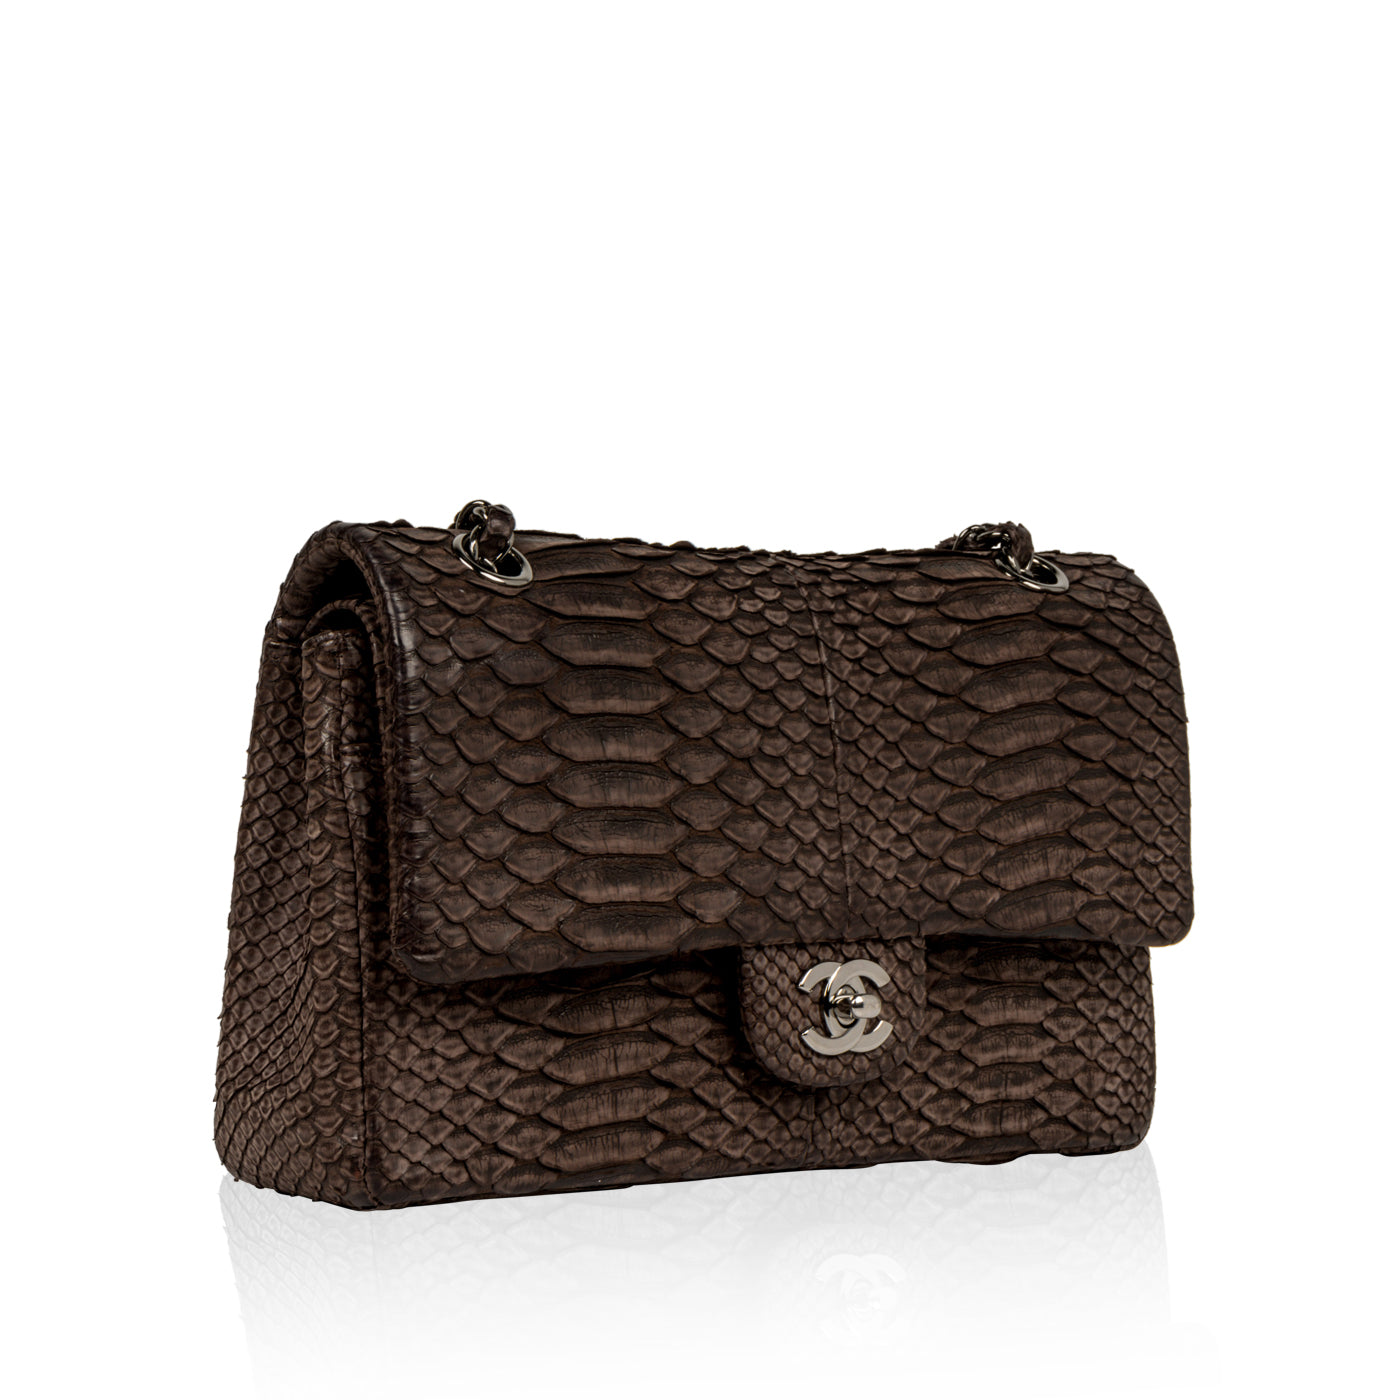 7617e3613807 Chanel - Classic Flap Bag - Python - Brown | Bagista